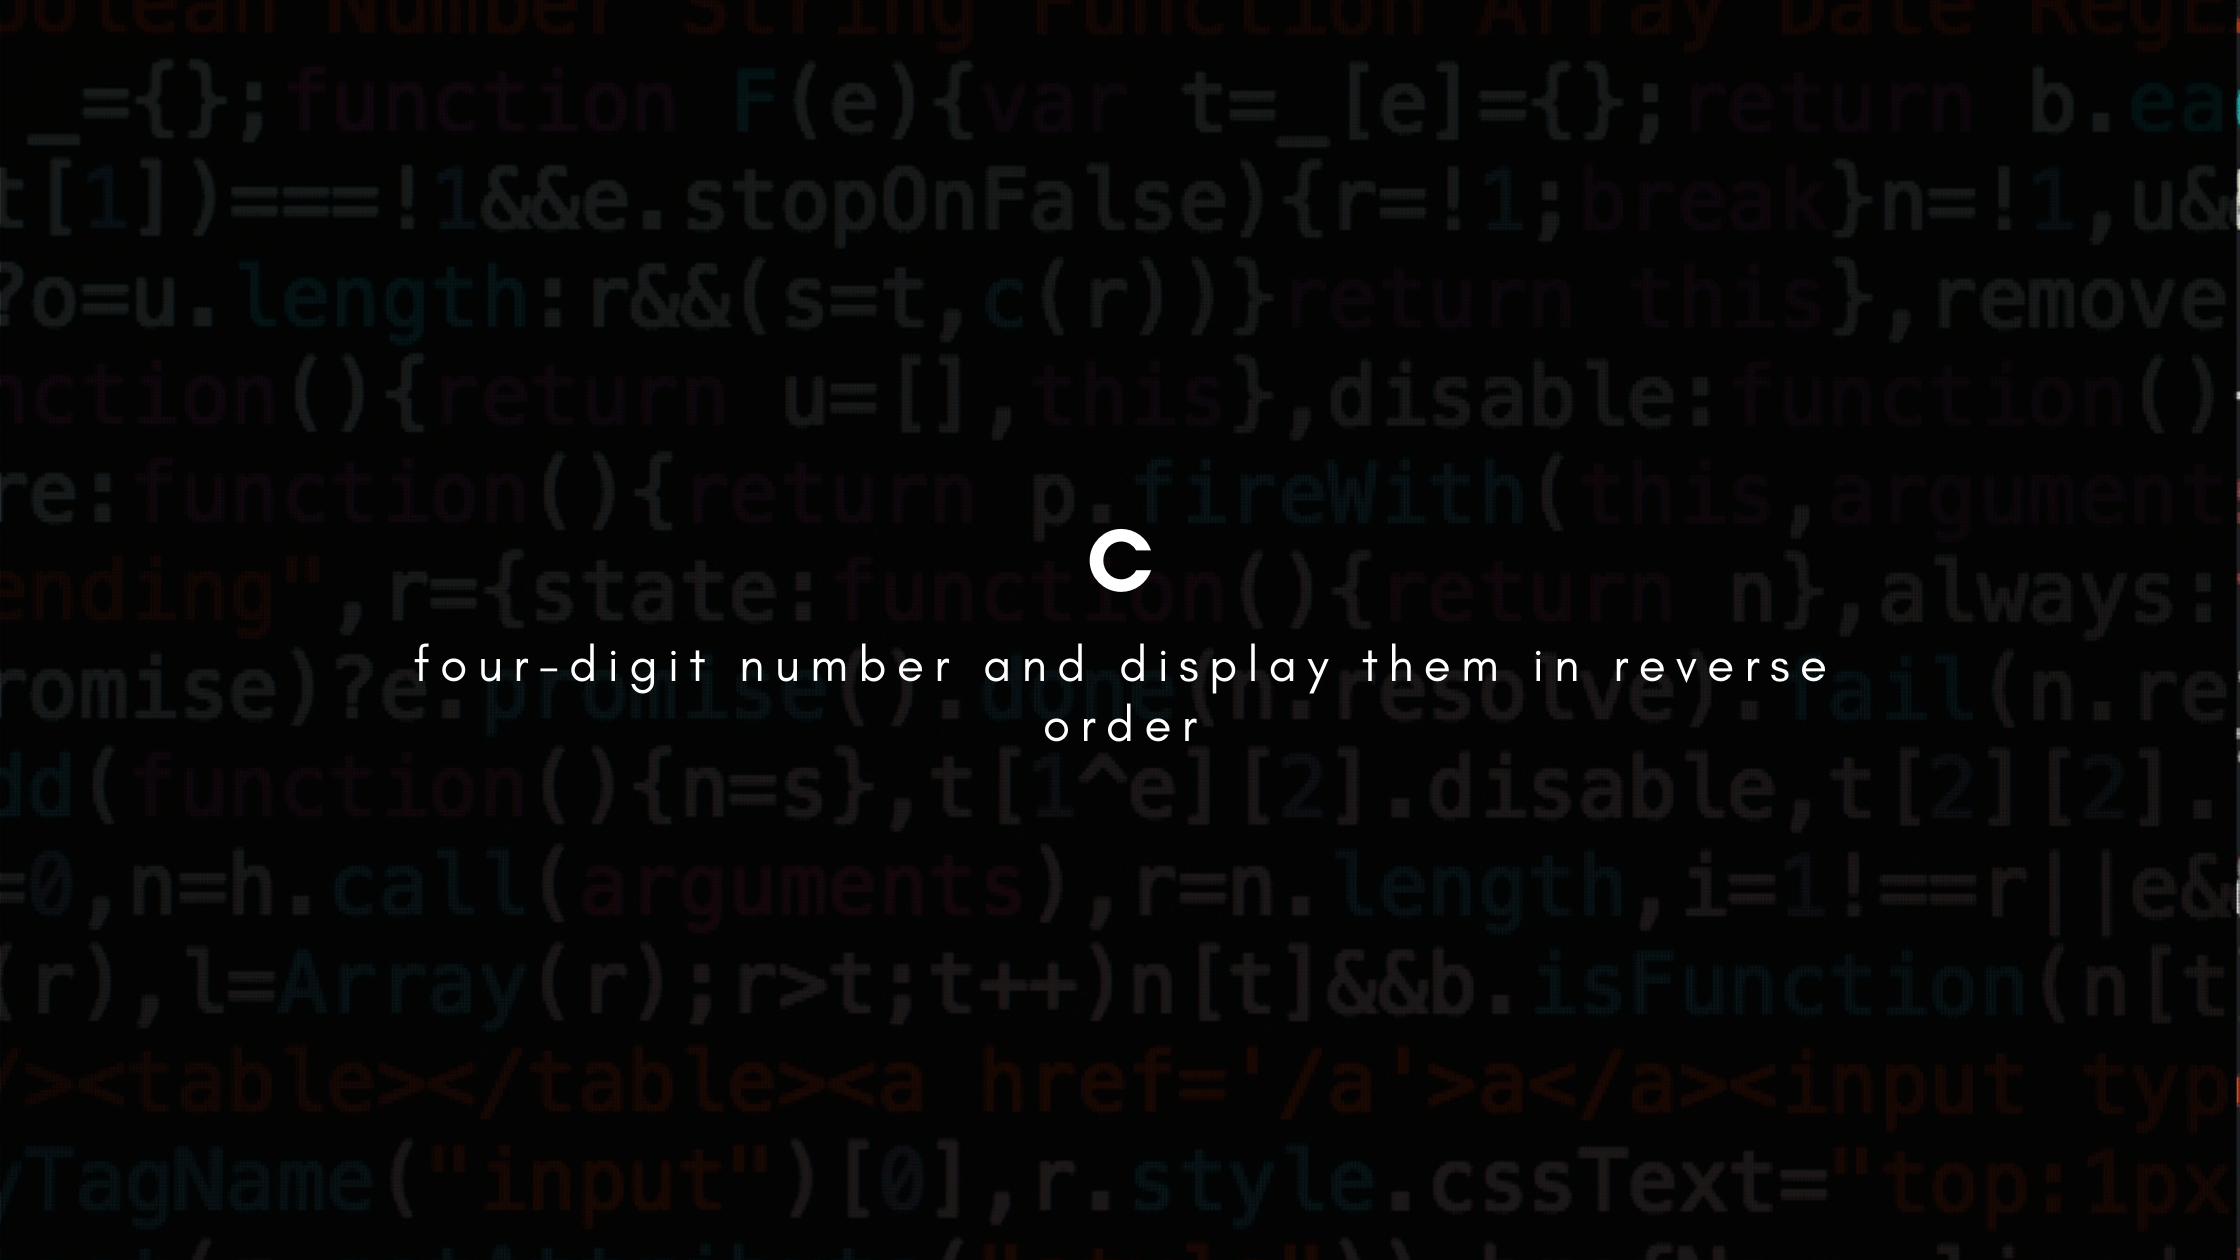 four-digit number and display them in reverse order